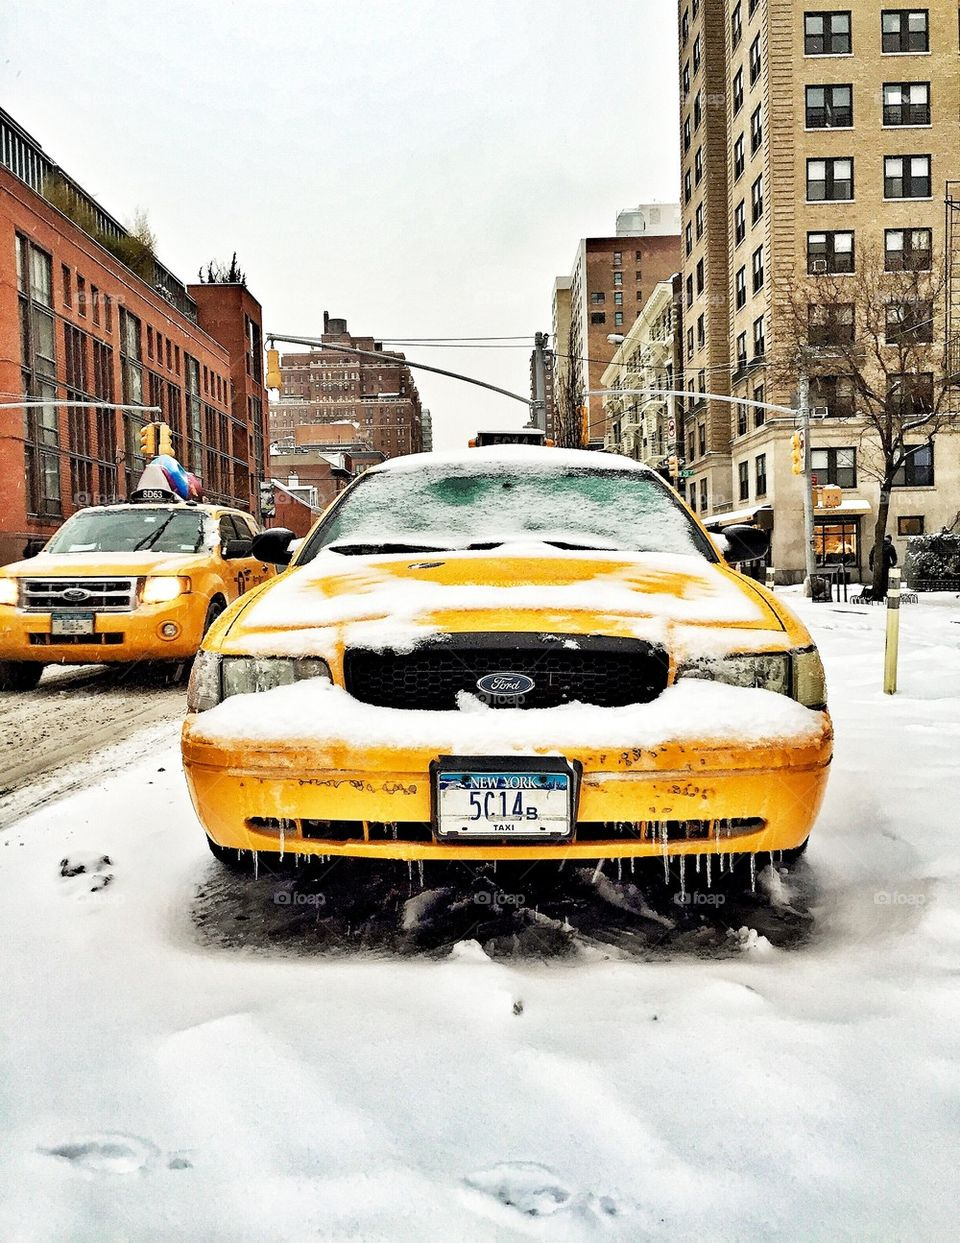 Fresh Snow Fall and New York Cabs